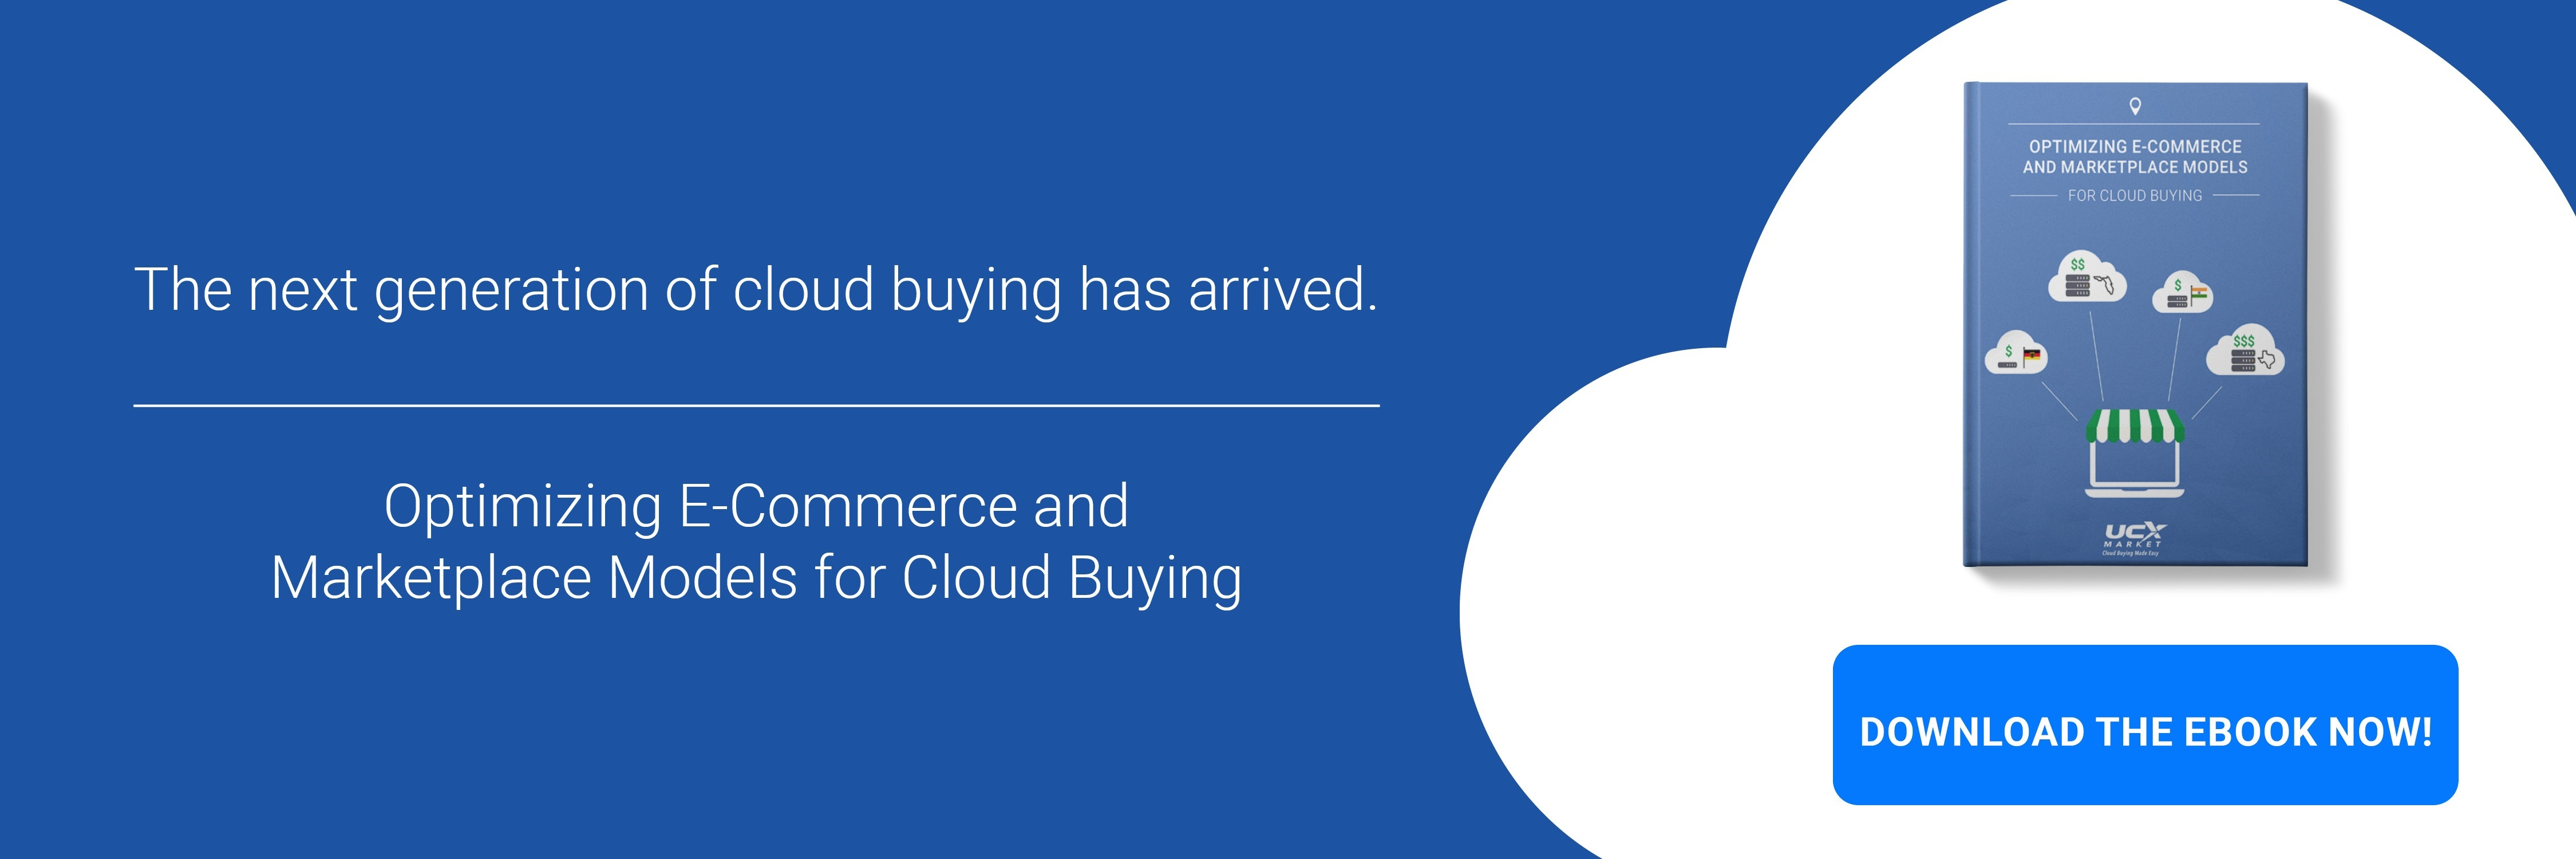 Optimizing E-Commerce and Marketplace Models for Cloud Buying